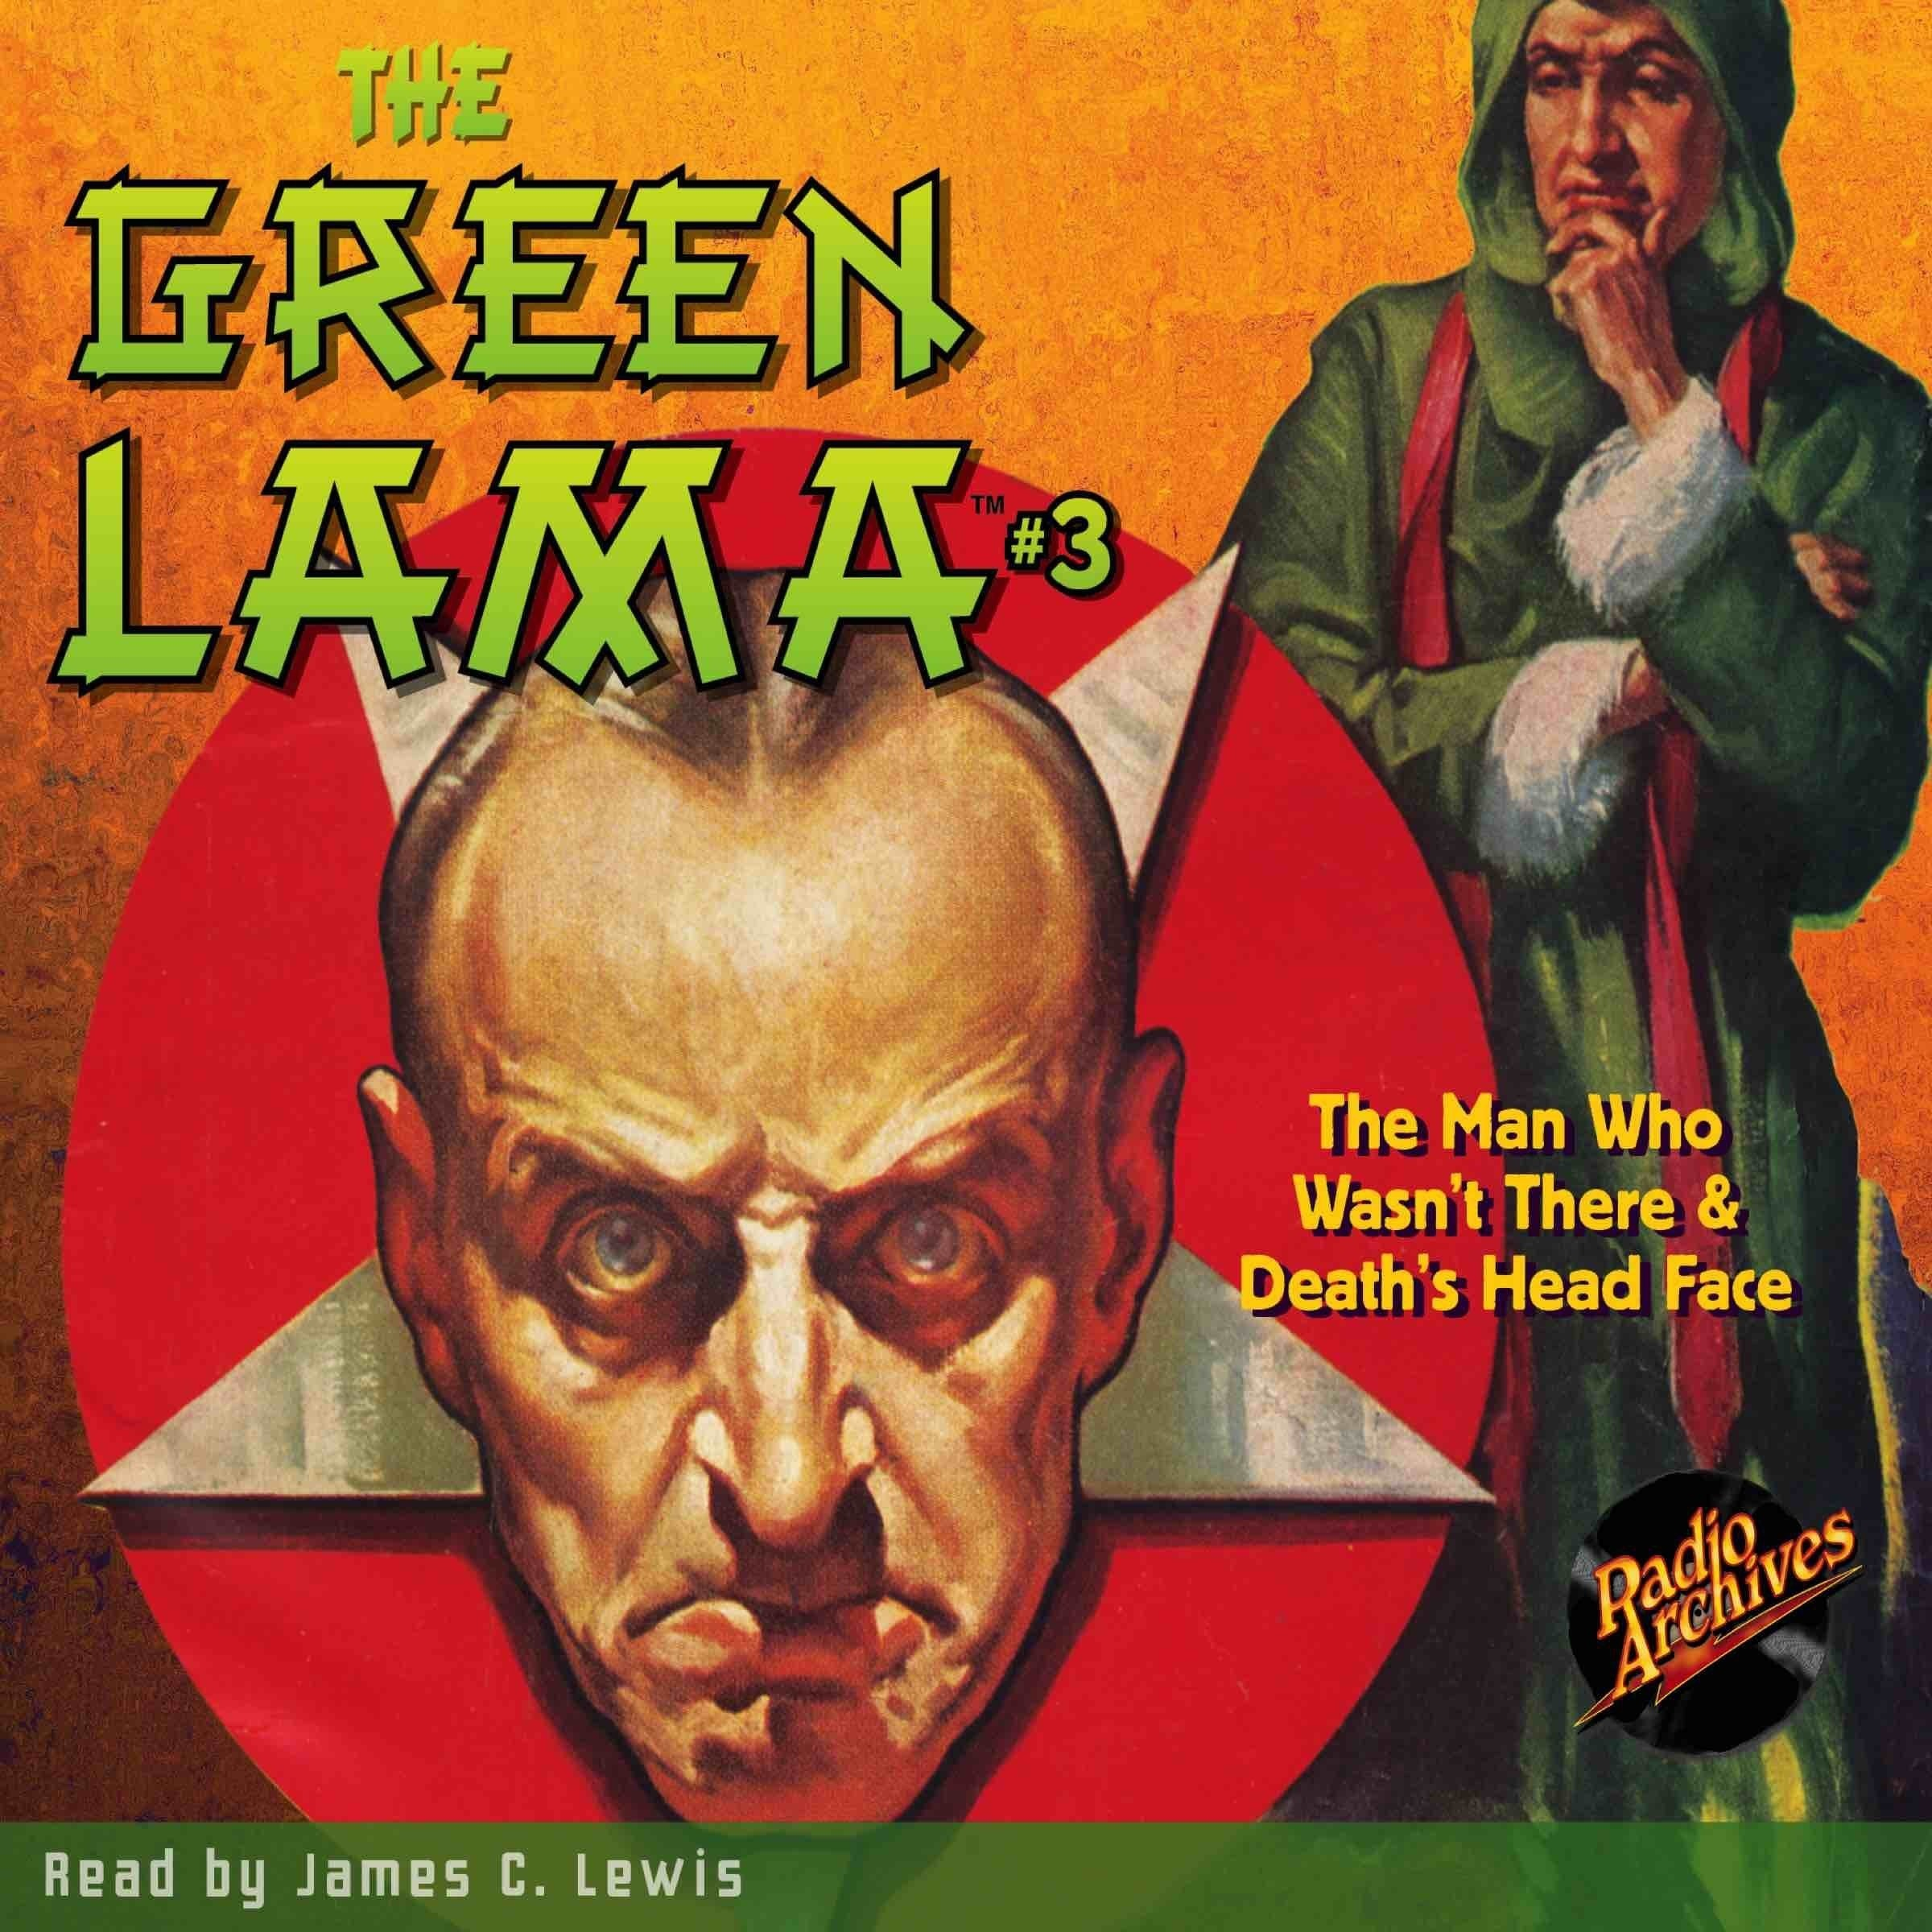 Printable The Green Lama #3: The Man Who Wasn't There & Death's Head Face Audiobook Cover Art